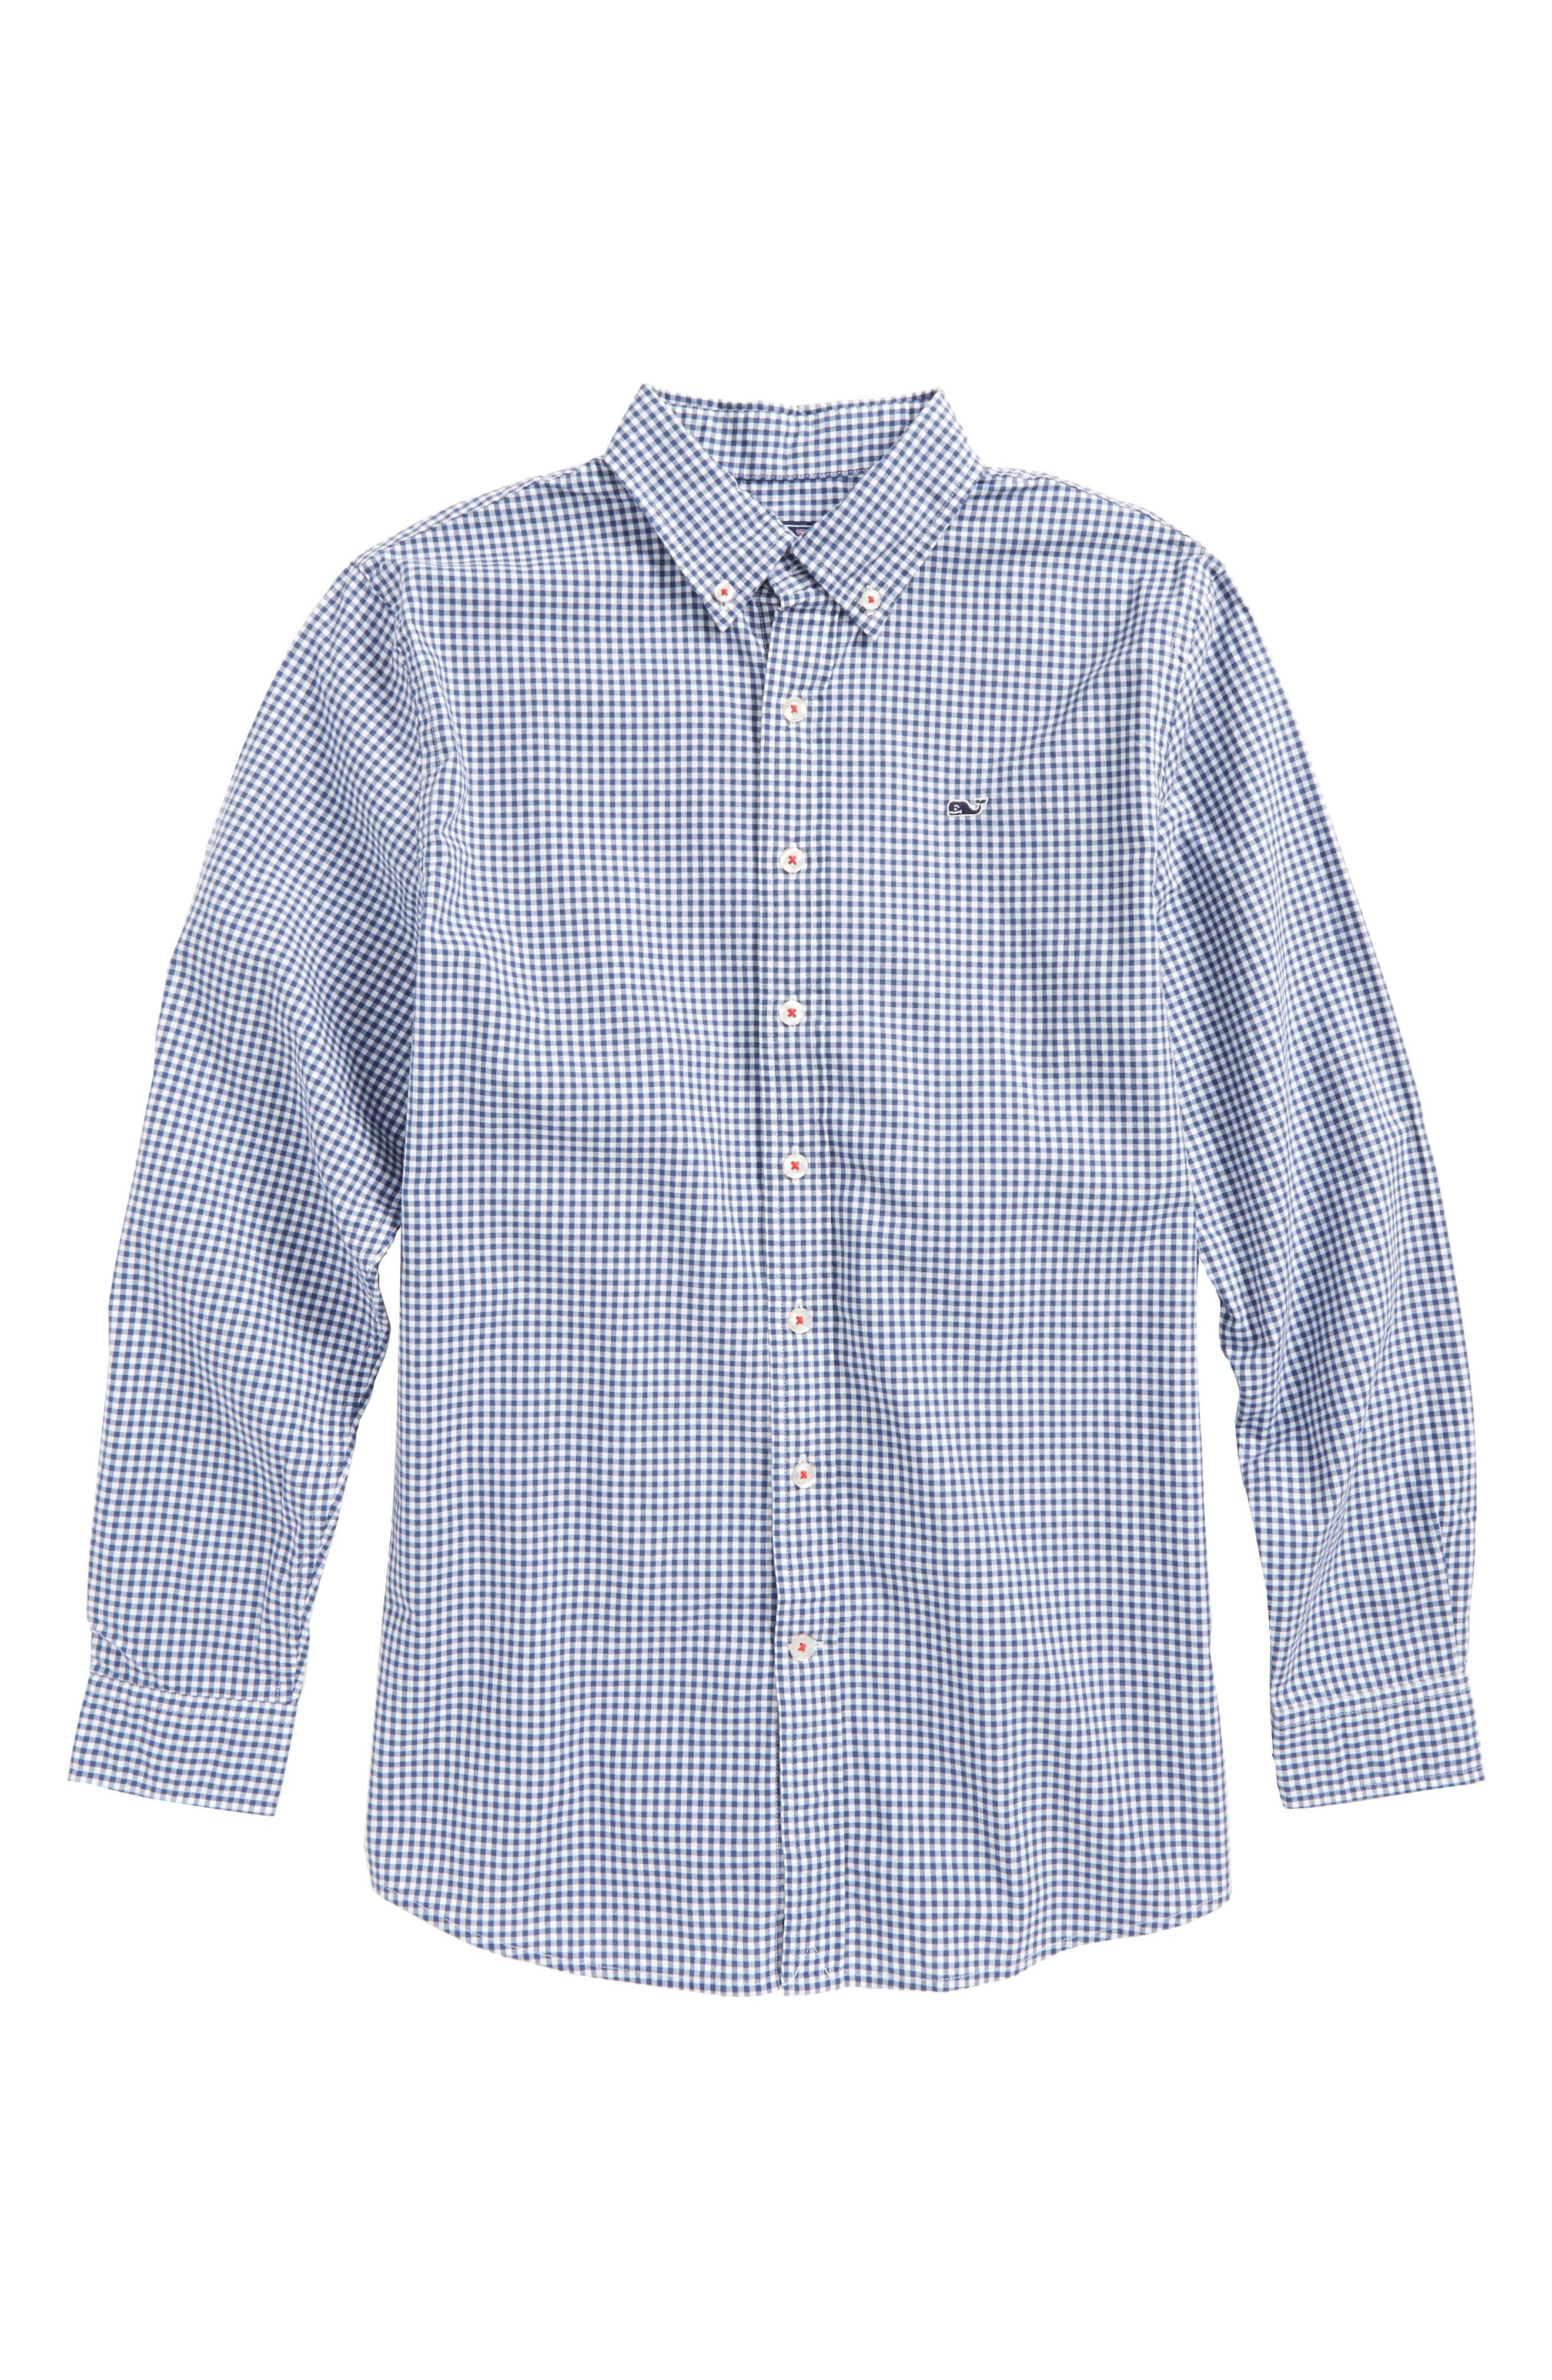 vineyard vines Old Town Gingham Whale Shirt (Big Boys)